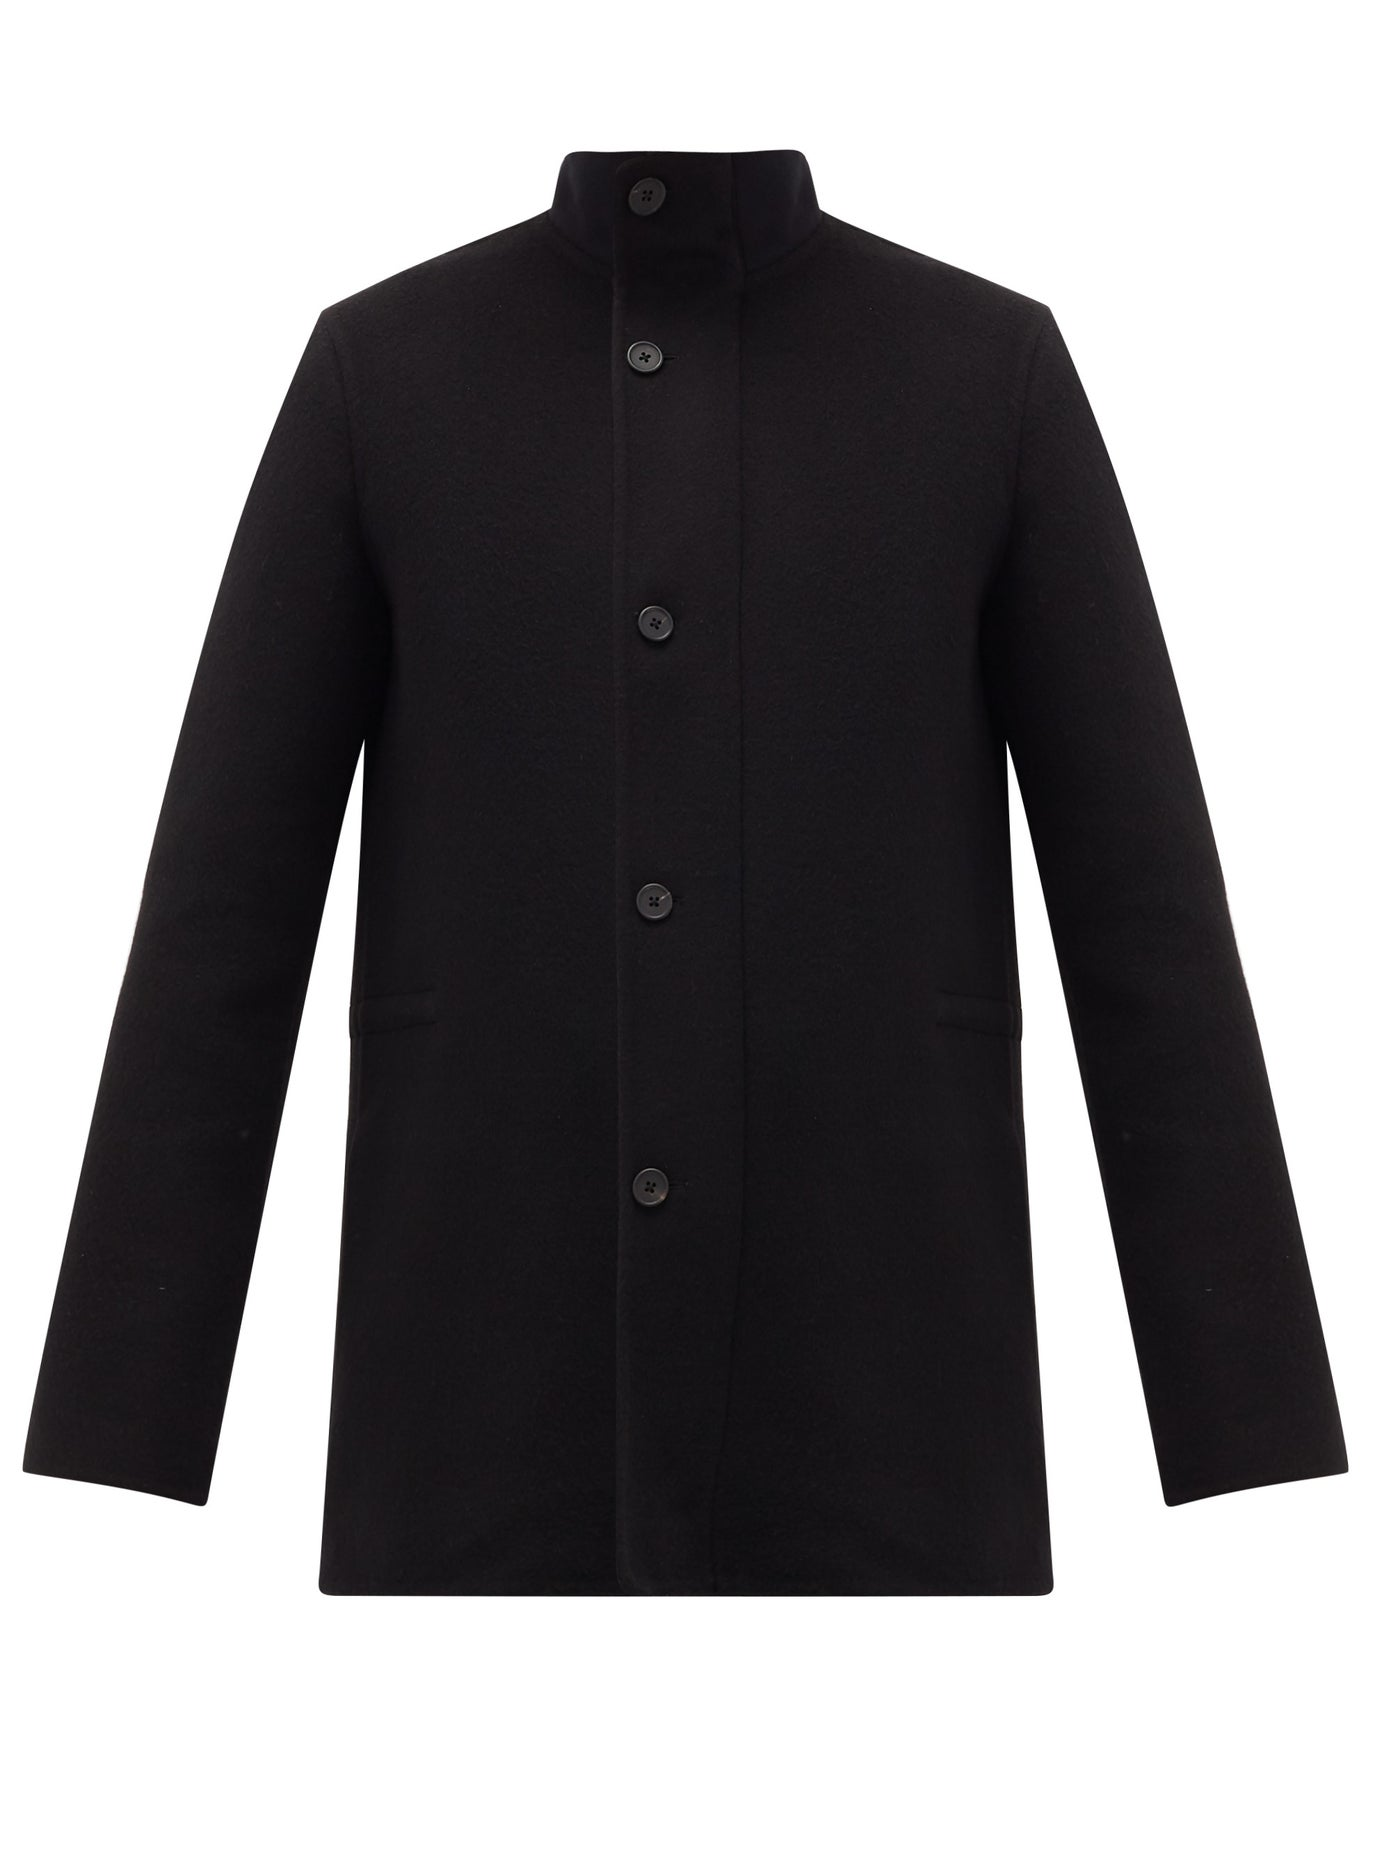 Darren Double-faced Cashmere Field Jacket